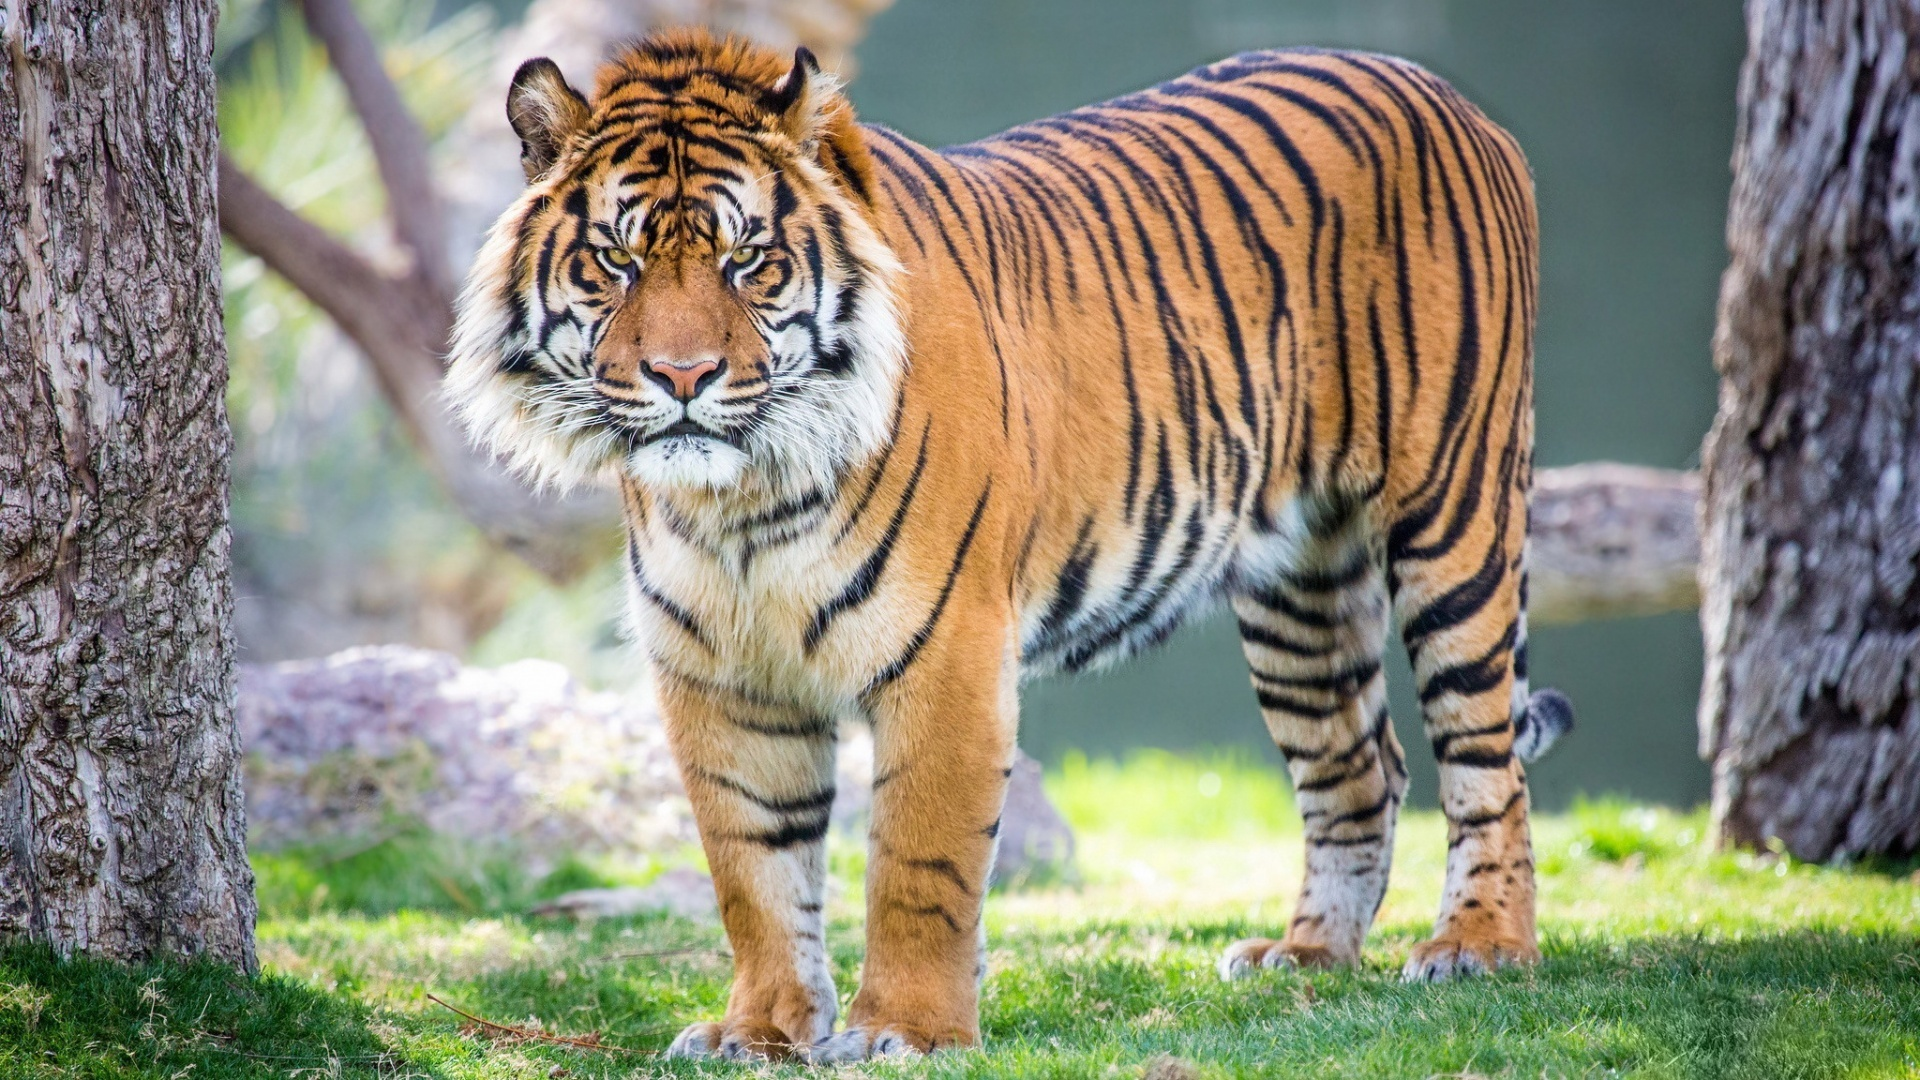 Tiger Species Thought Extinct Is Possibly Spotted in Pictures of javan tiger